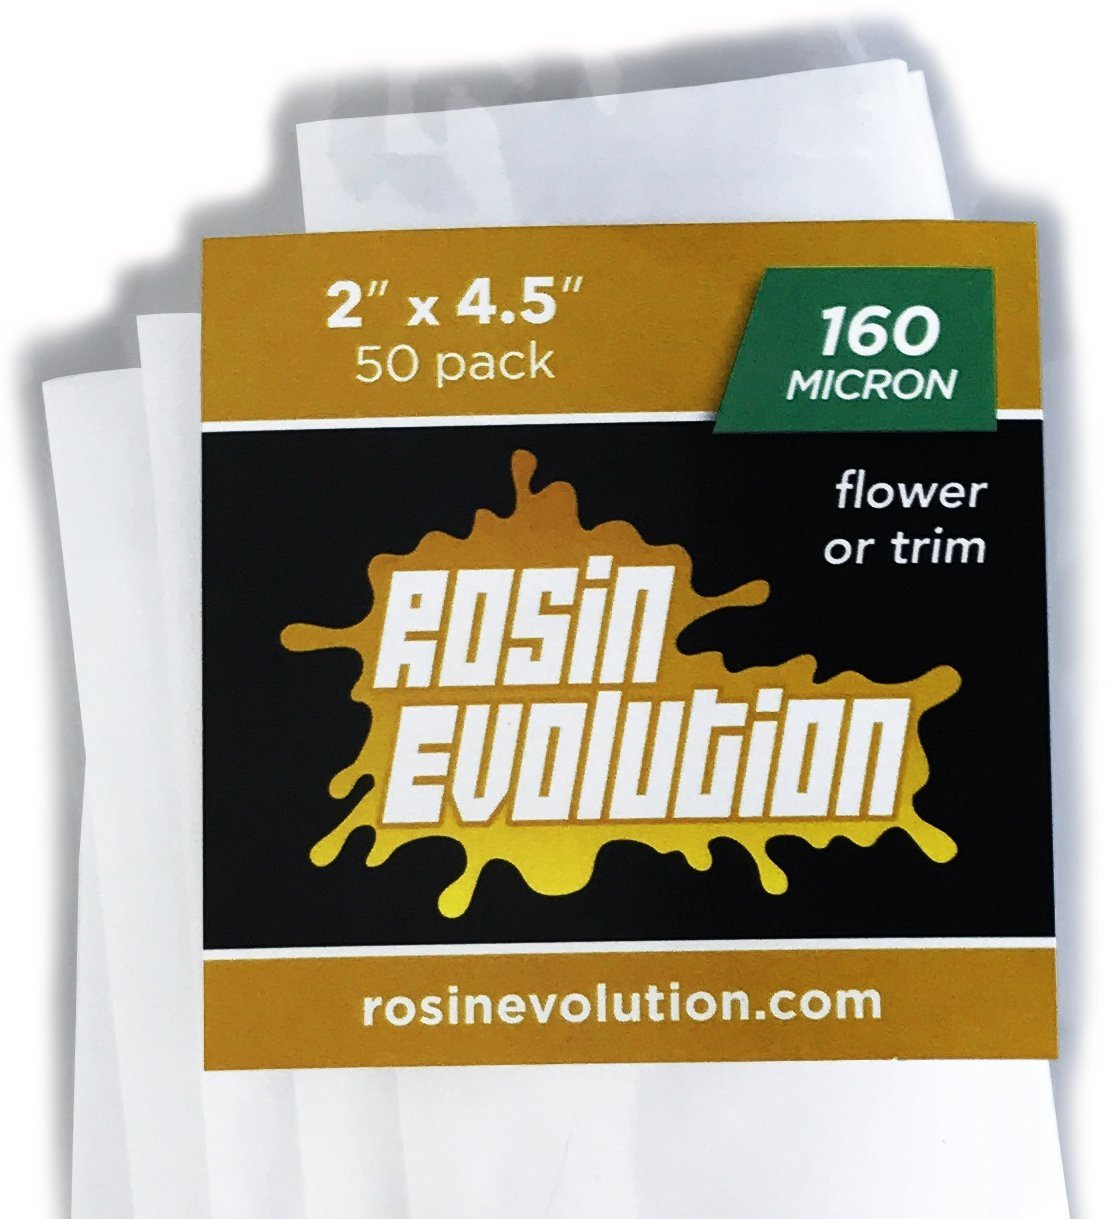 Rosin Evolution Press Bags - 160 Micron Screens (2'' x 4.5'') - 50 Pack by Rosin Evolution